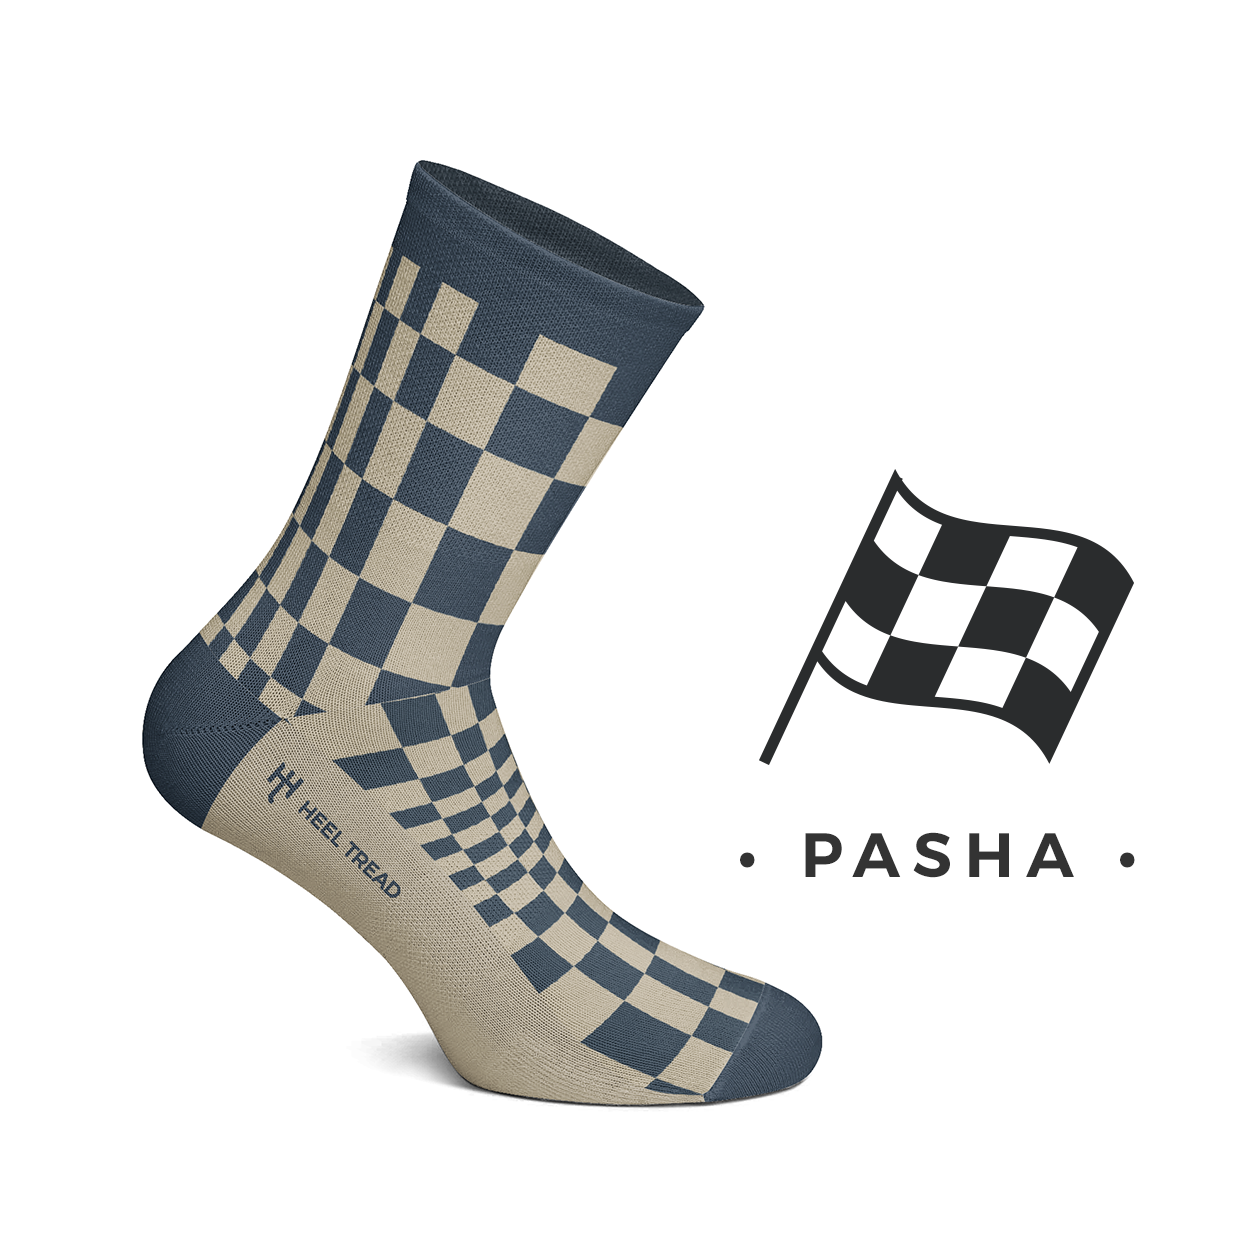 CHAUSSETTES PASHA NAVY / TAUPE